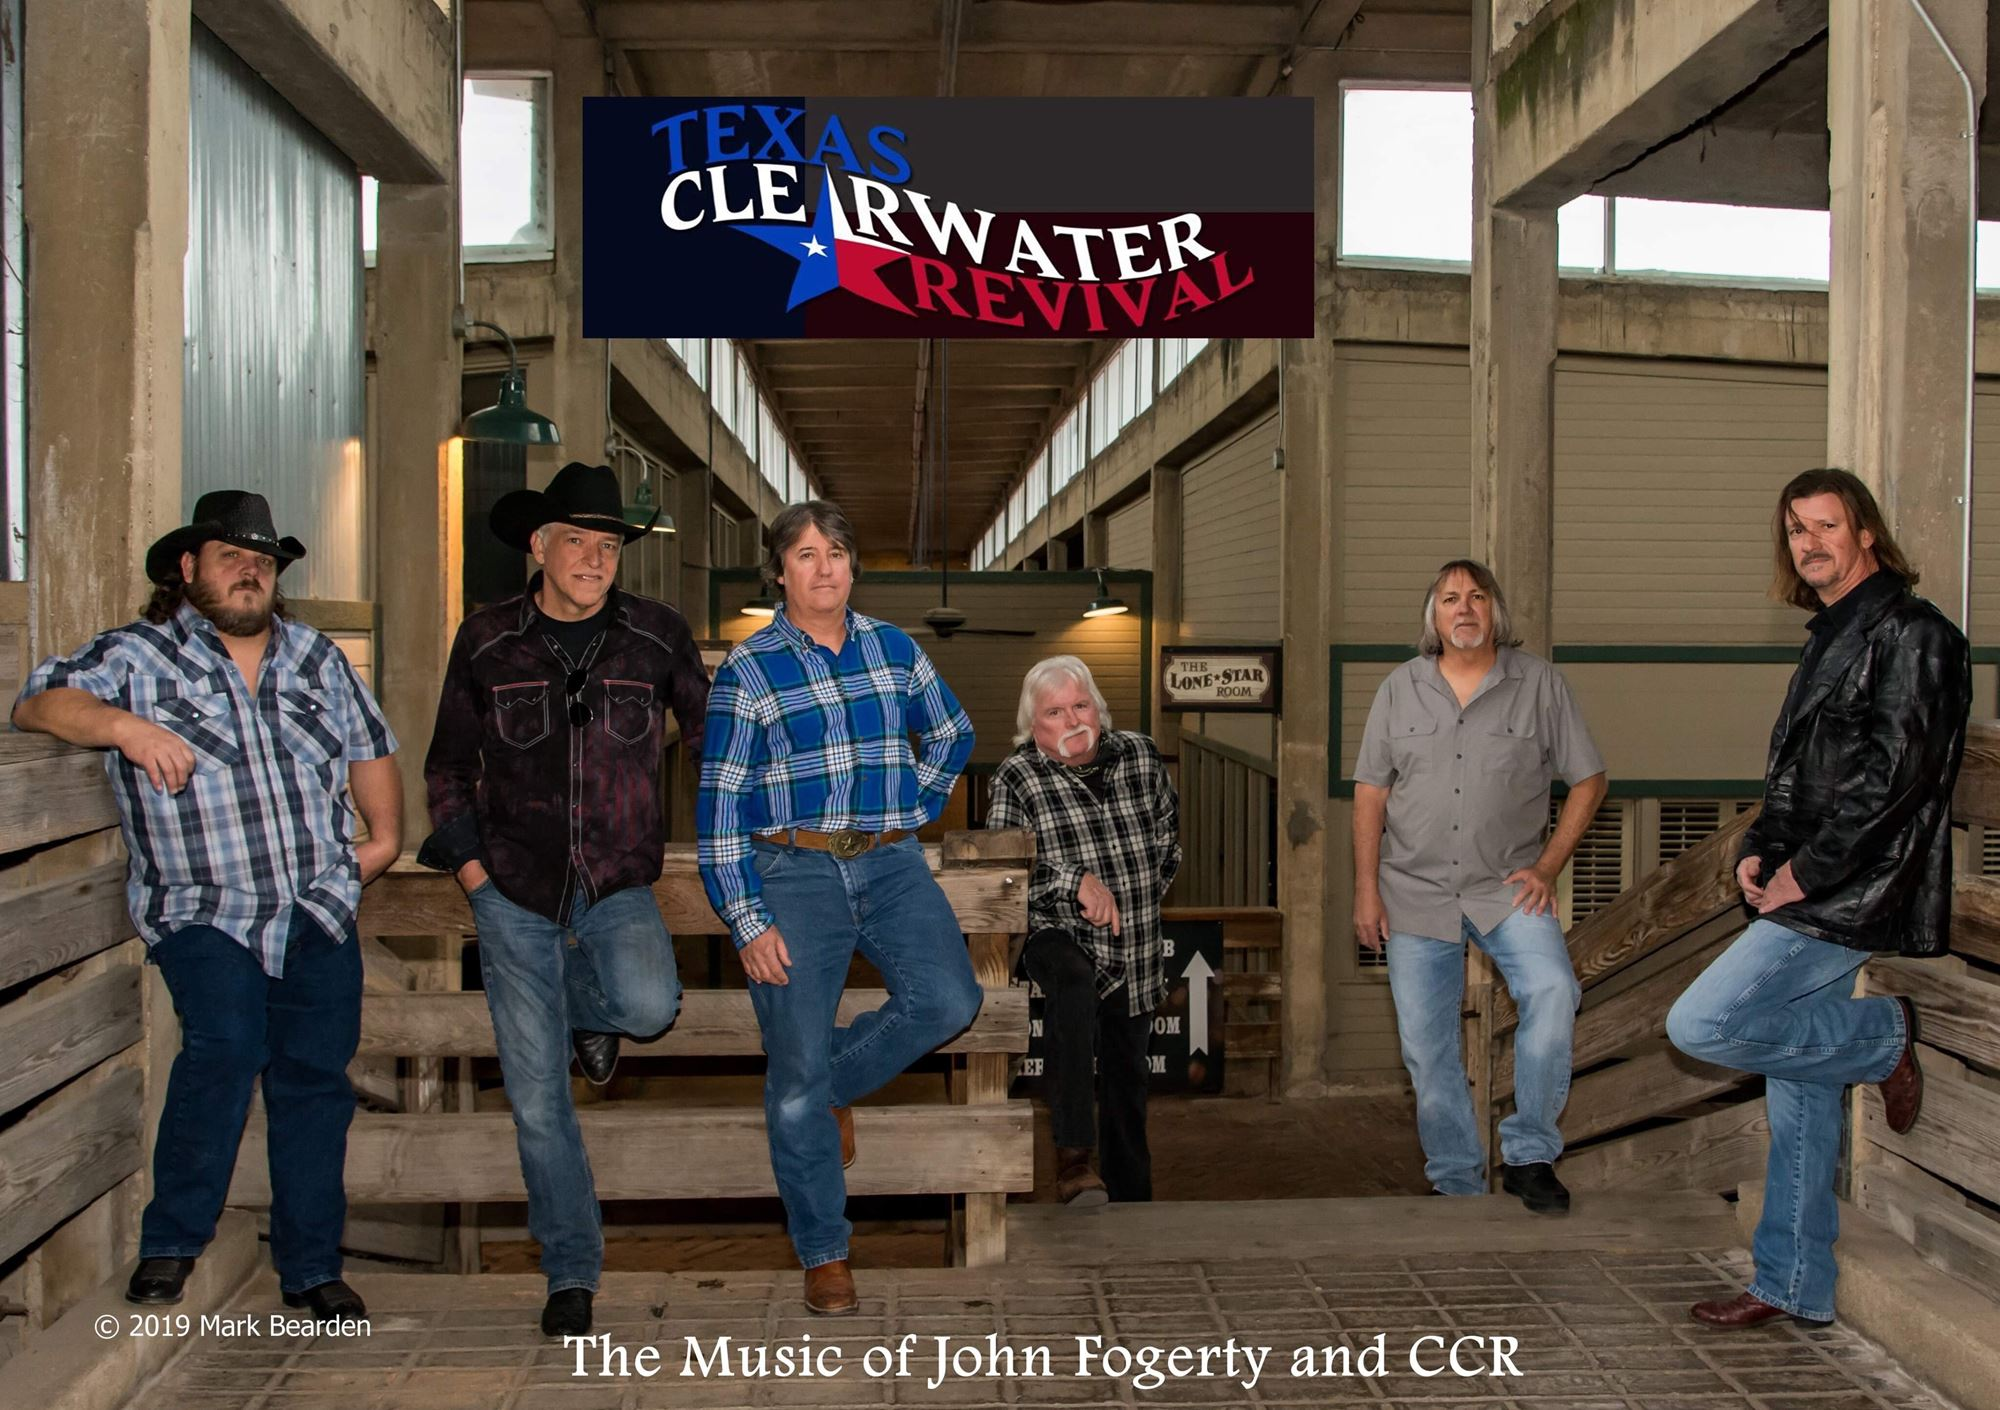 Texas Clearwater Revival